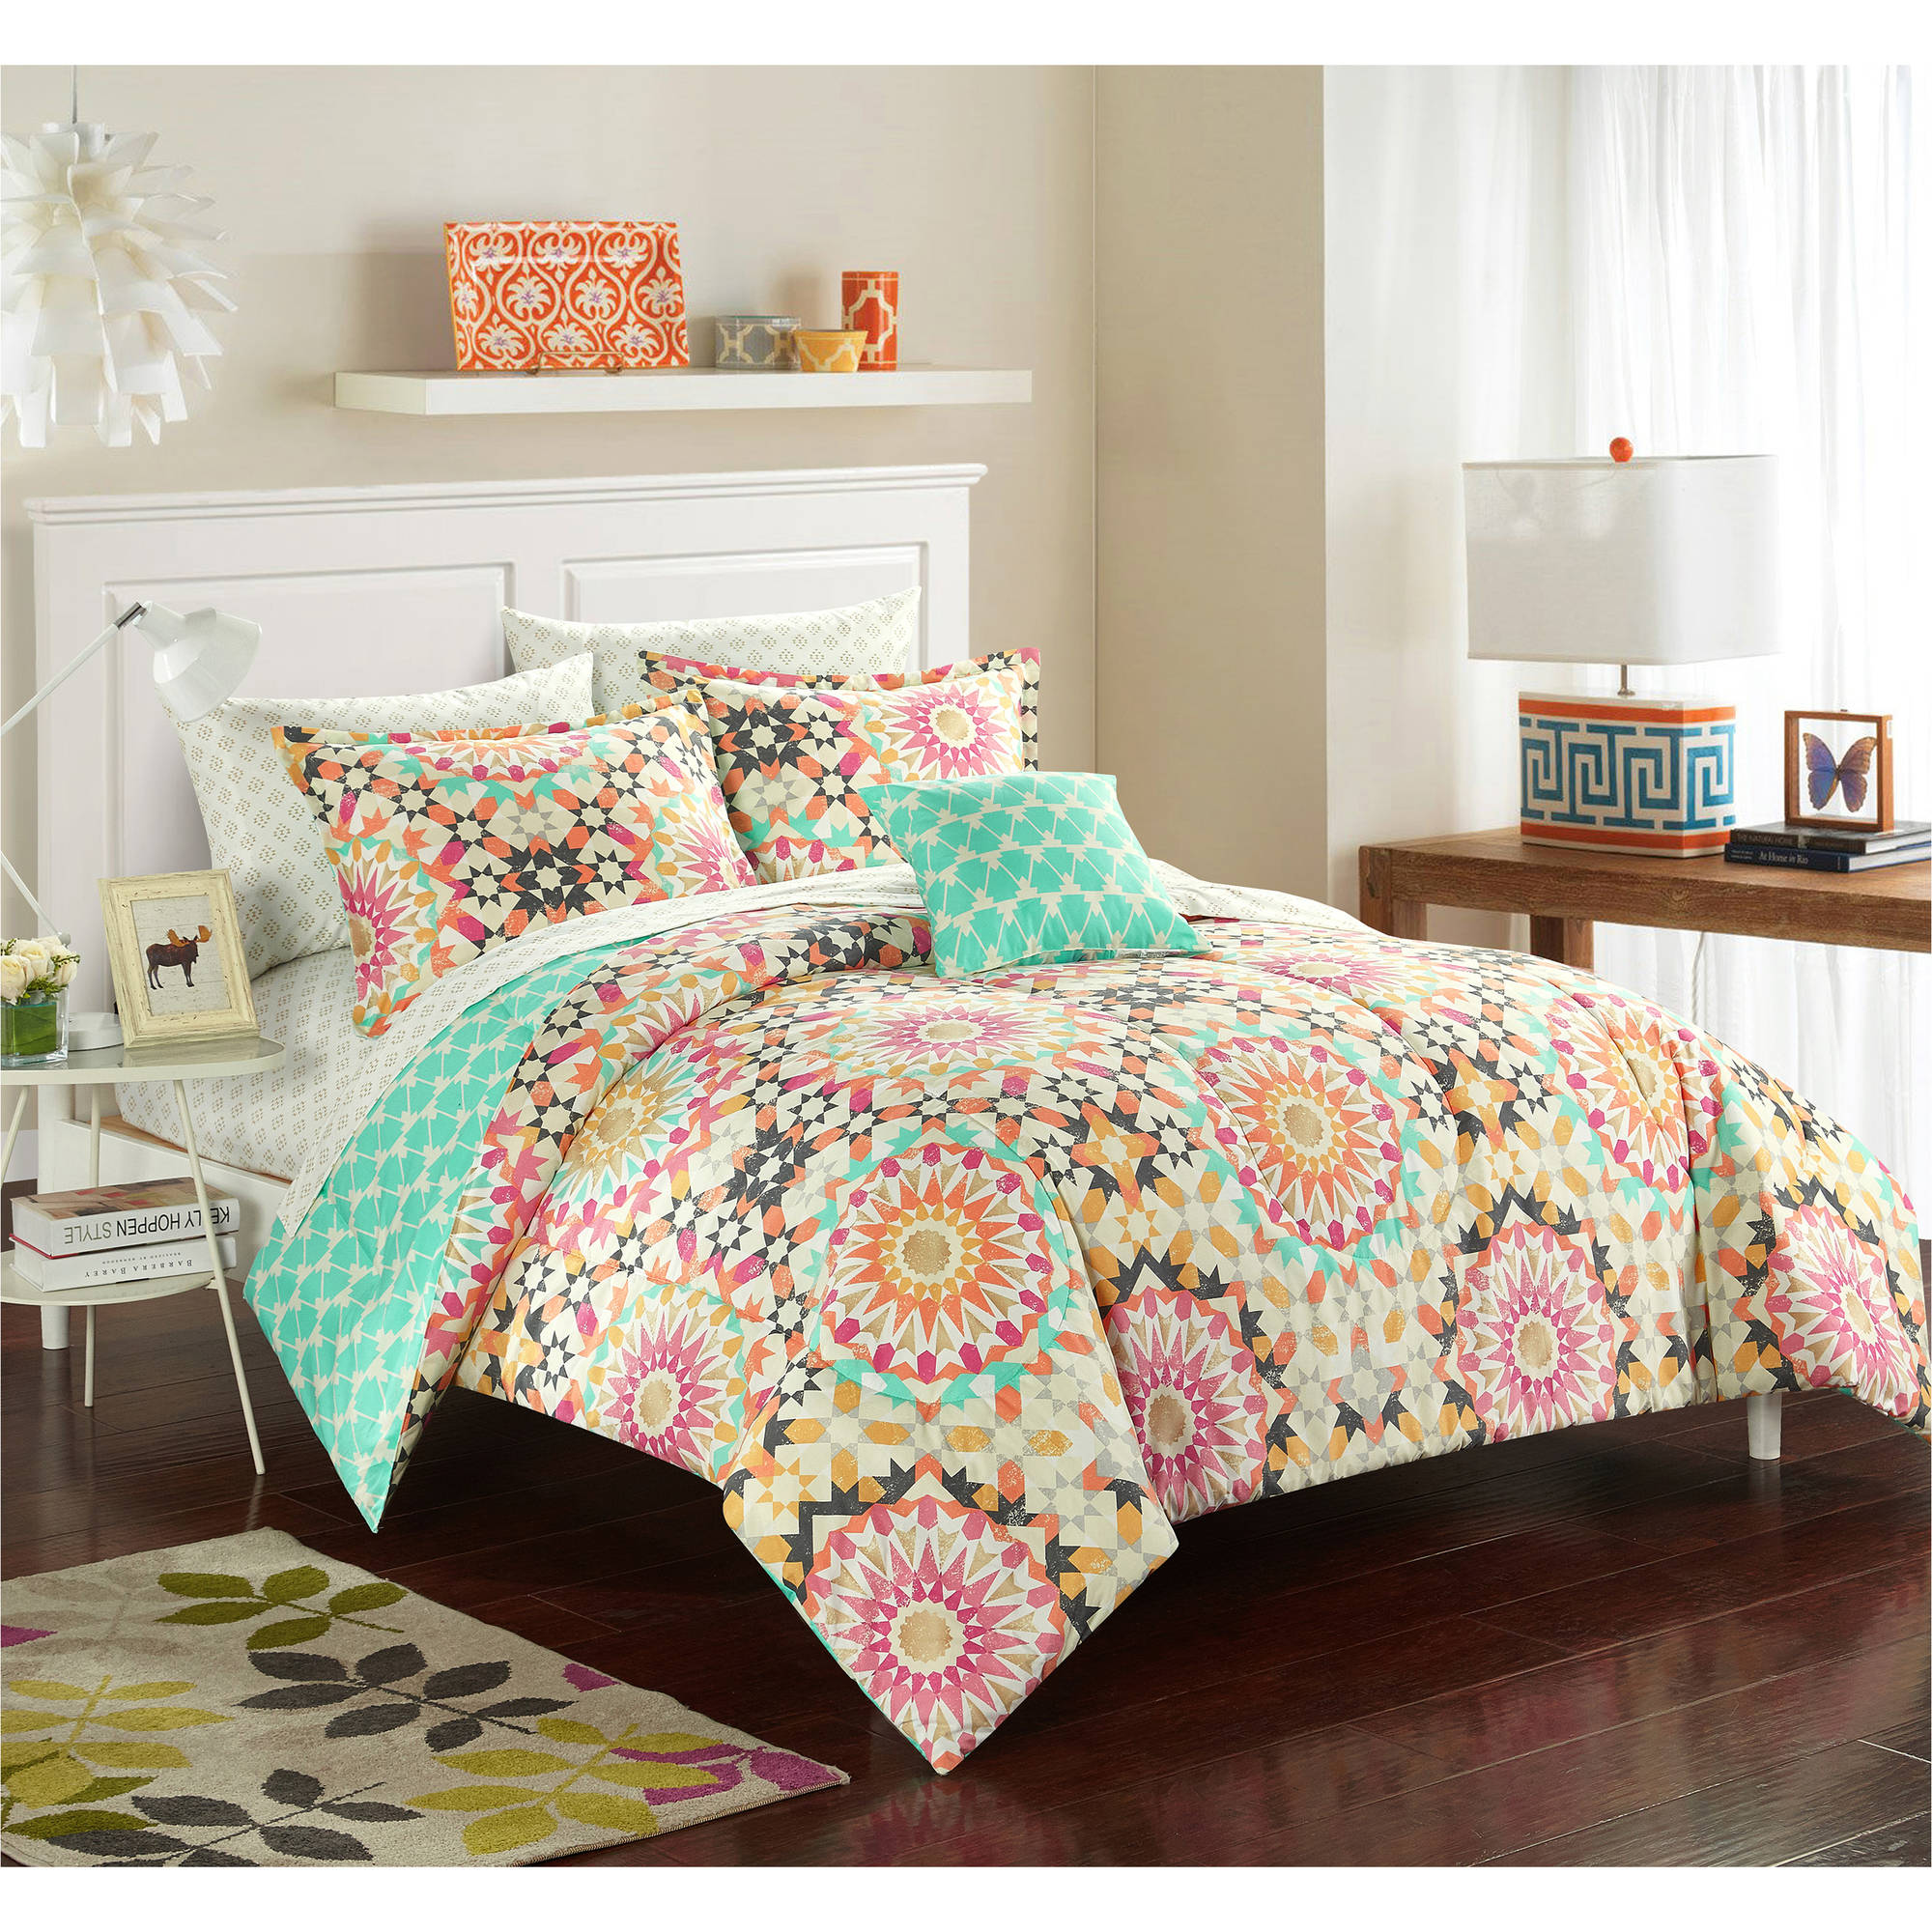 Formula Mila Medallion Bed in a Bag Bedding Set Walmart